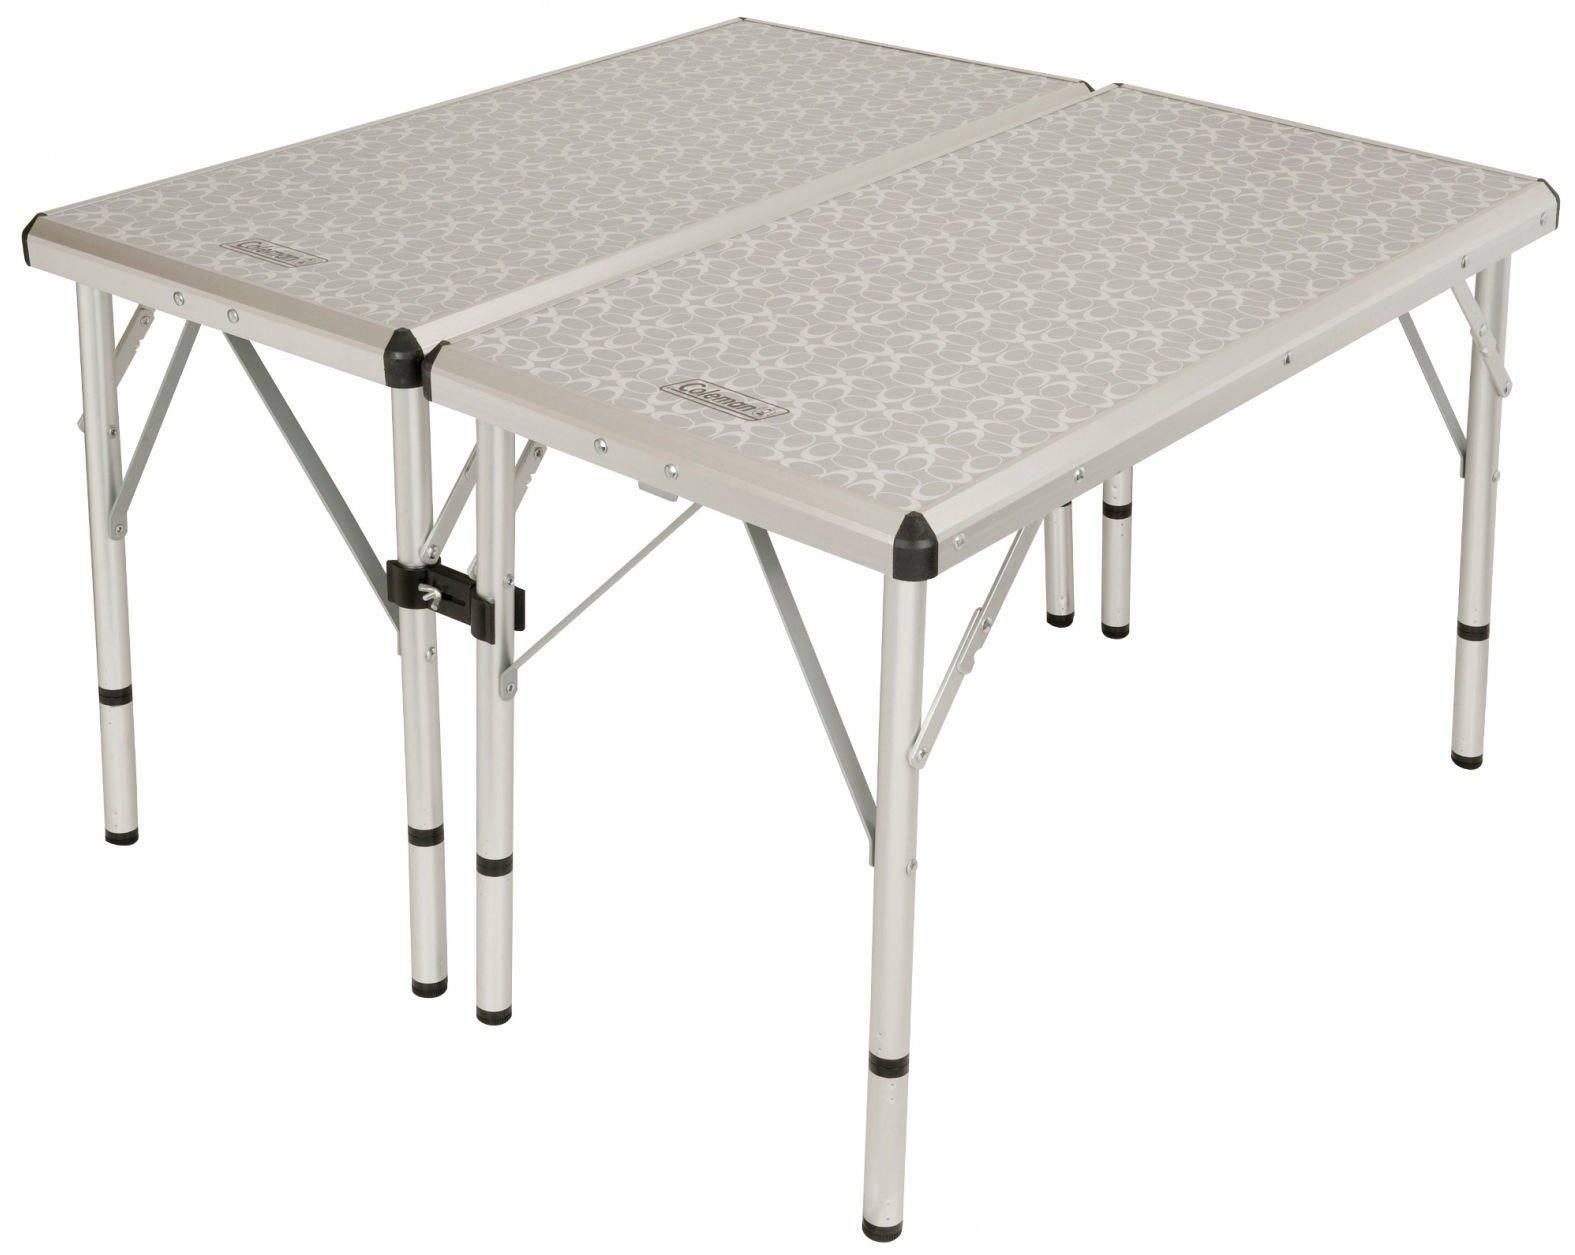 COLEMAN Camping Tisch »6 in 1 Camping Table«, grau